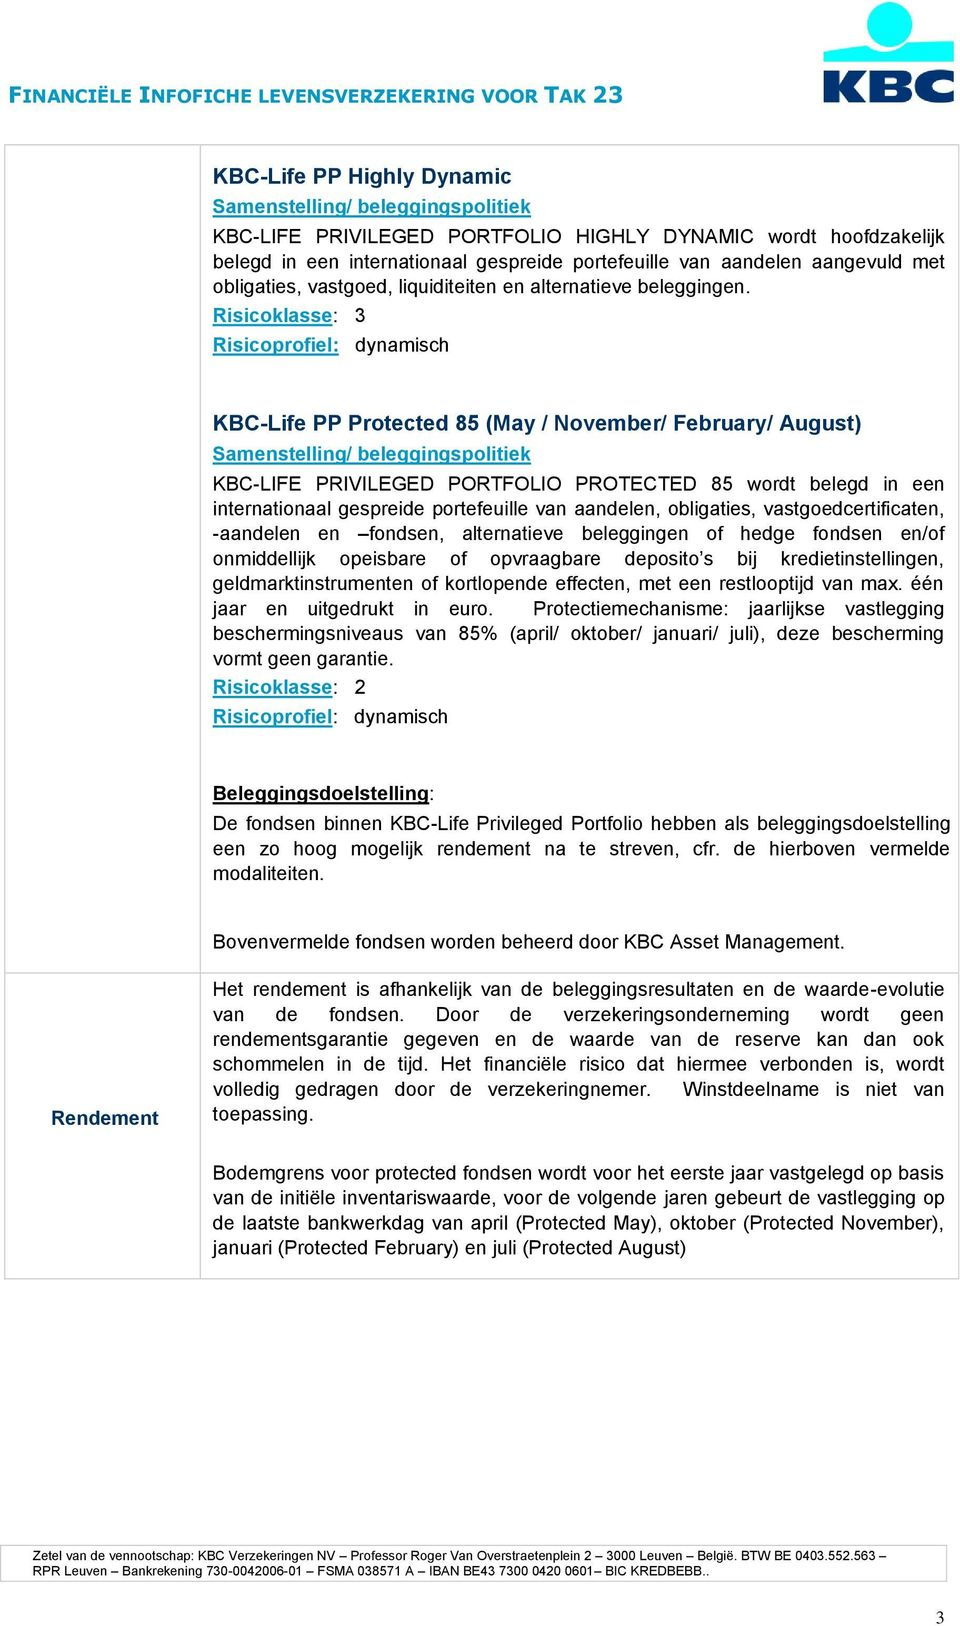 Risicoklasse: 3 KBC-Life PP Protected 85 (May / November/ February/ August) KBC-LIFE PRIVILEGED PORTFOLIO PROTECTED 85 wordt belegd in een internationaal gespreide portefeuille van aandelen,